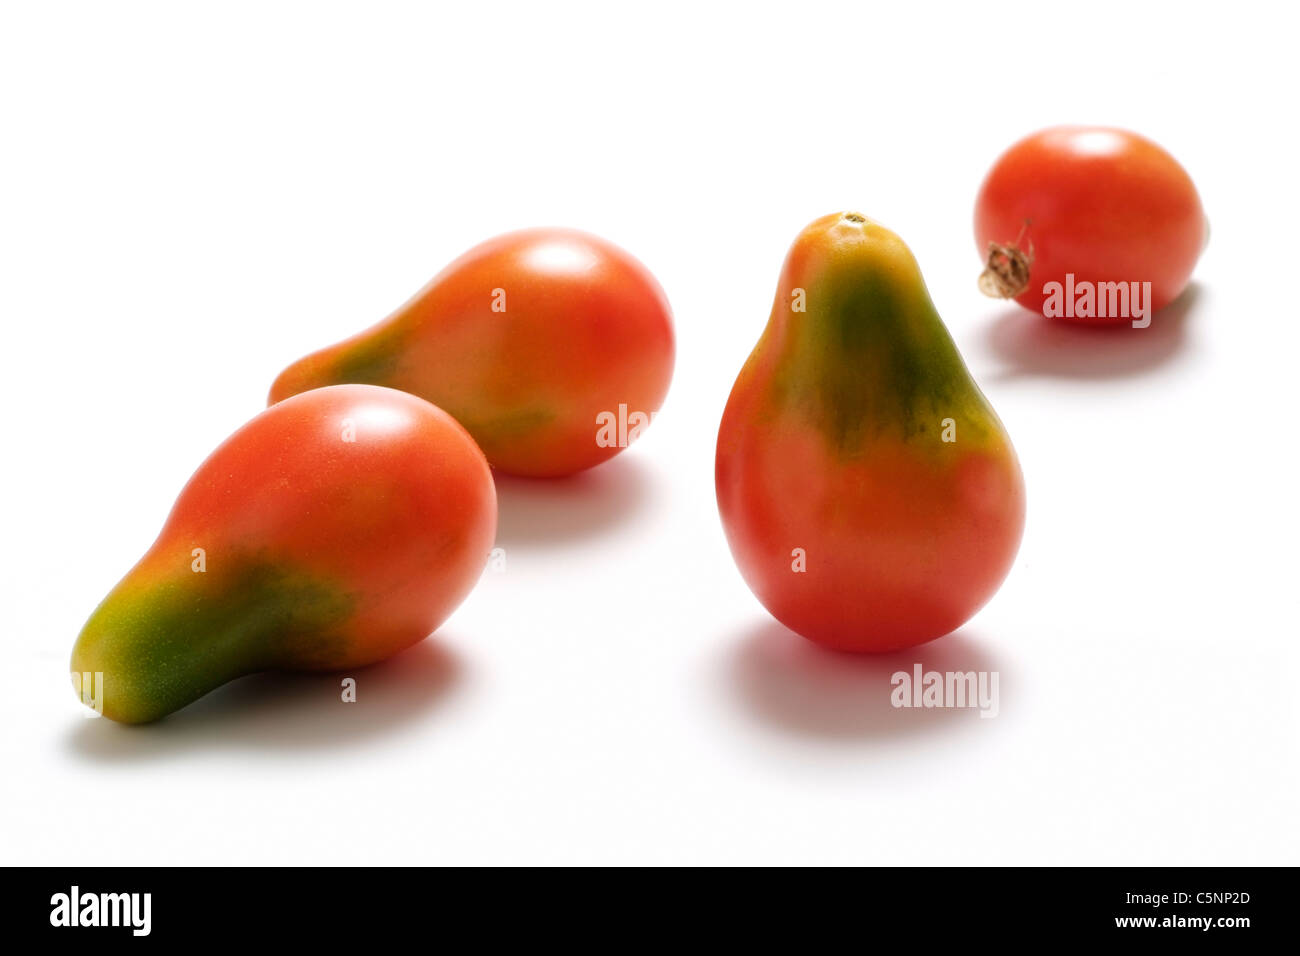 Tomato varieties: pear shaped red cherry tomato - Stock Image